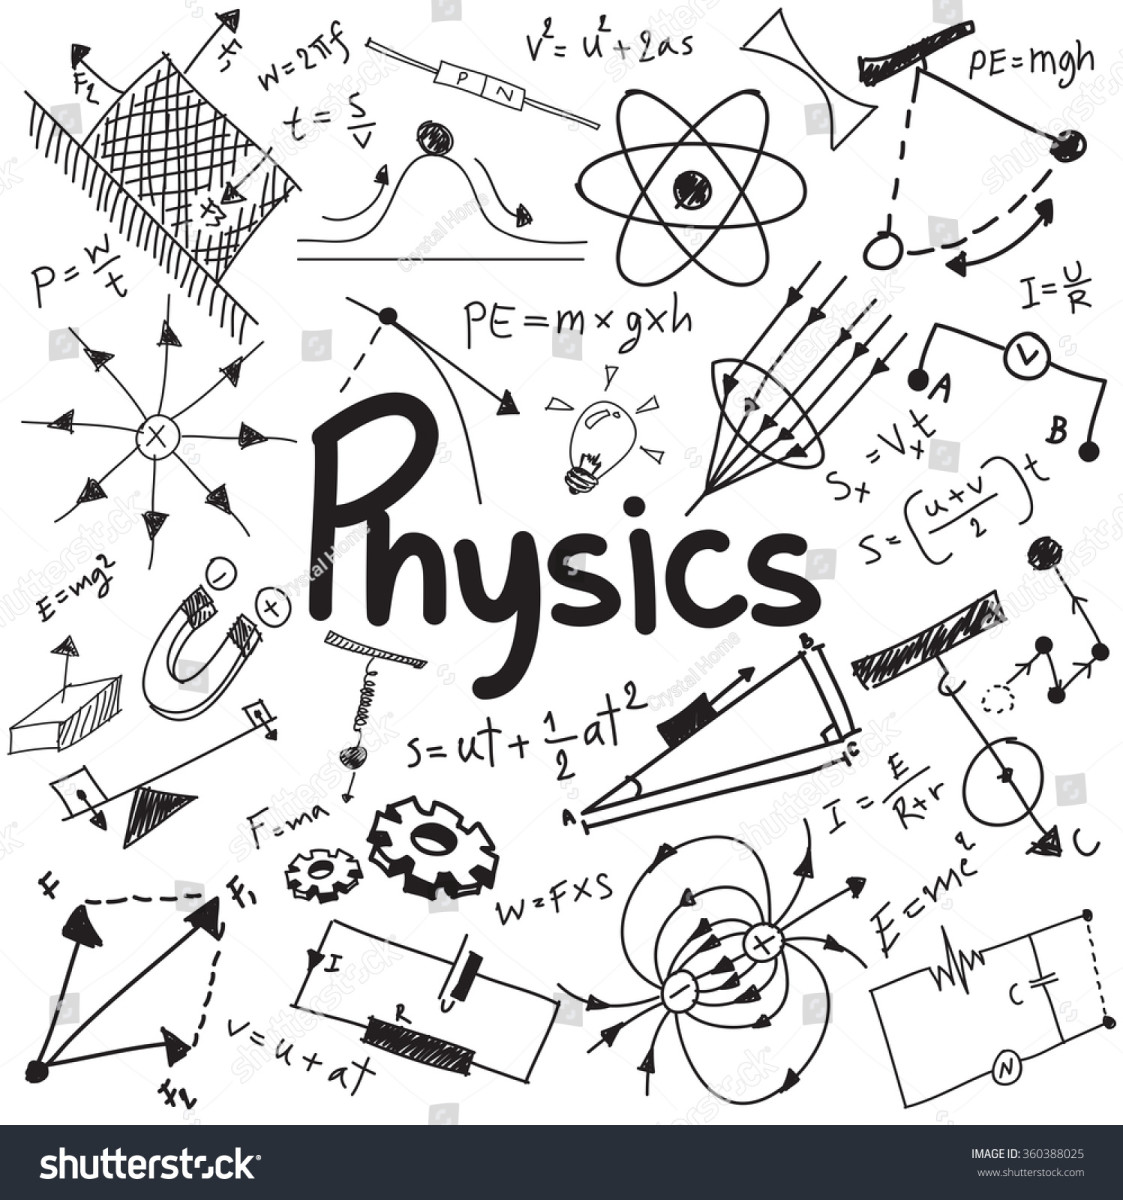 basic-physics-lesson-4-mass-and-weight